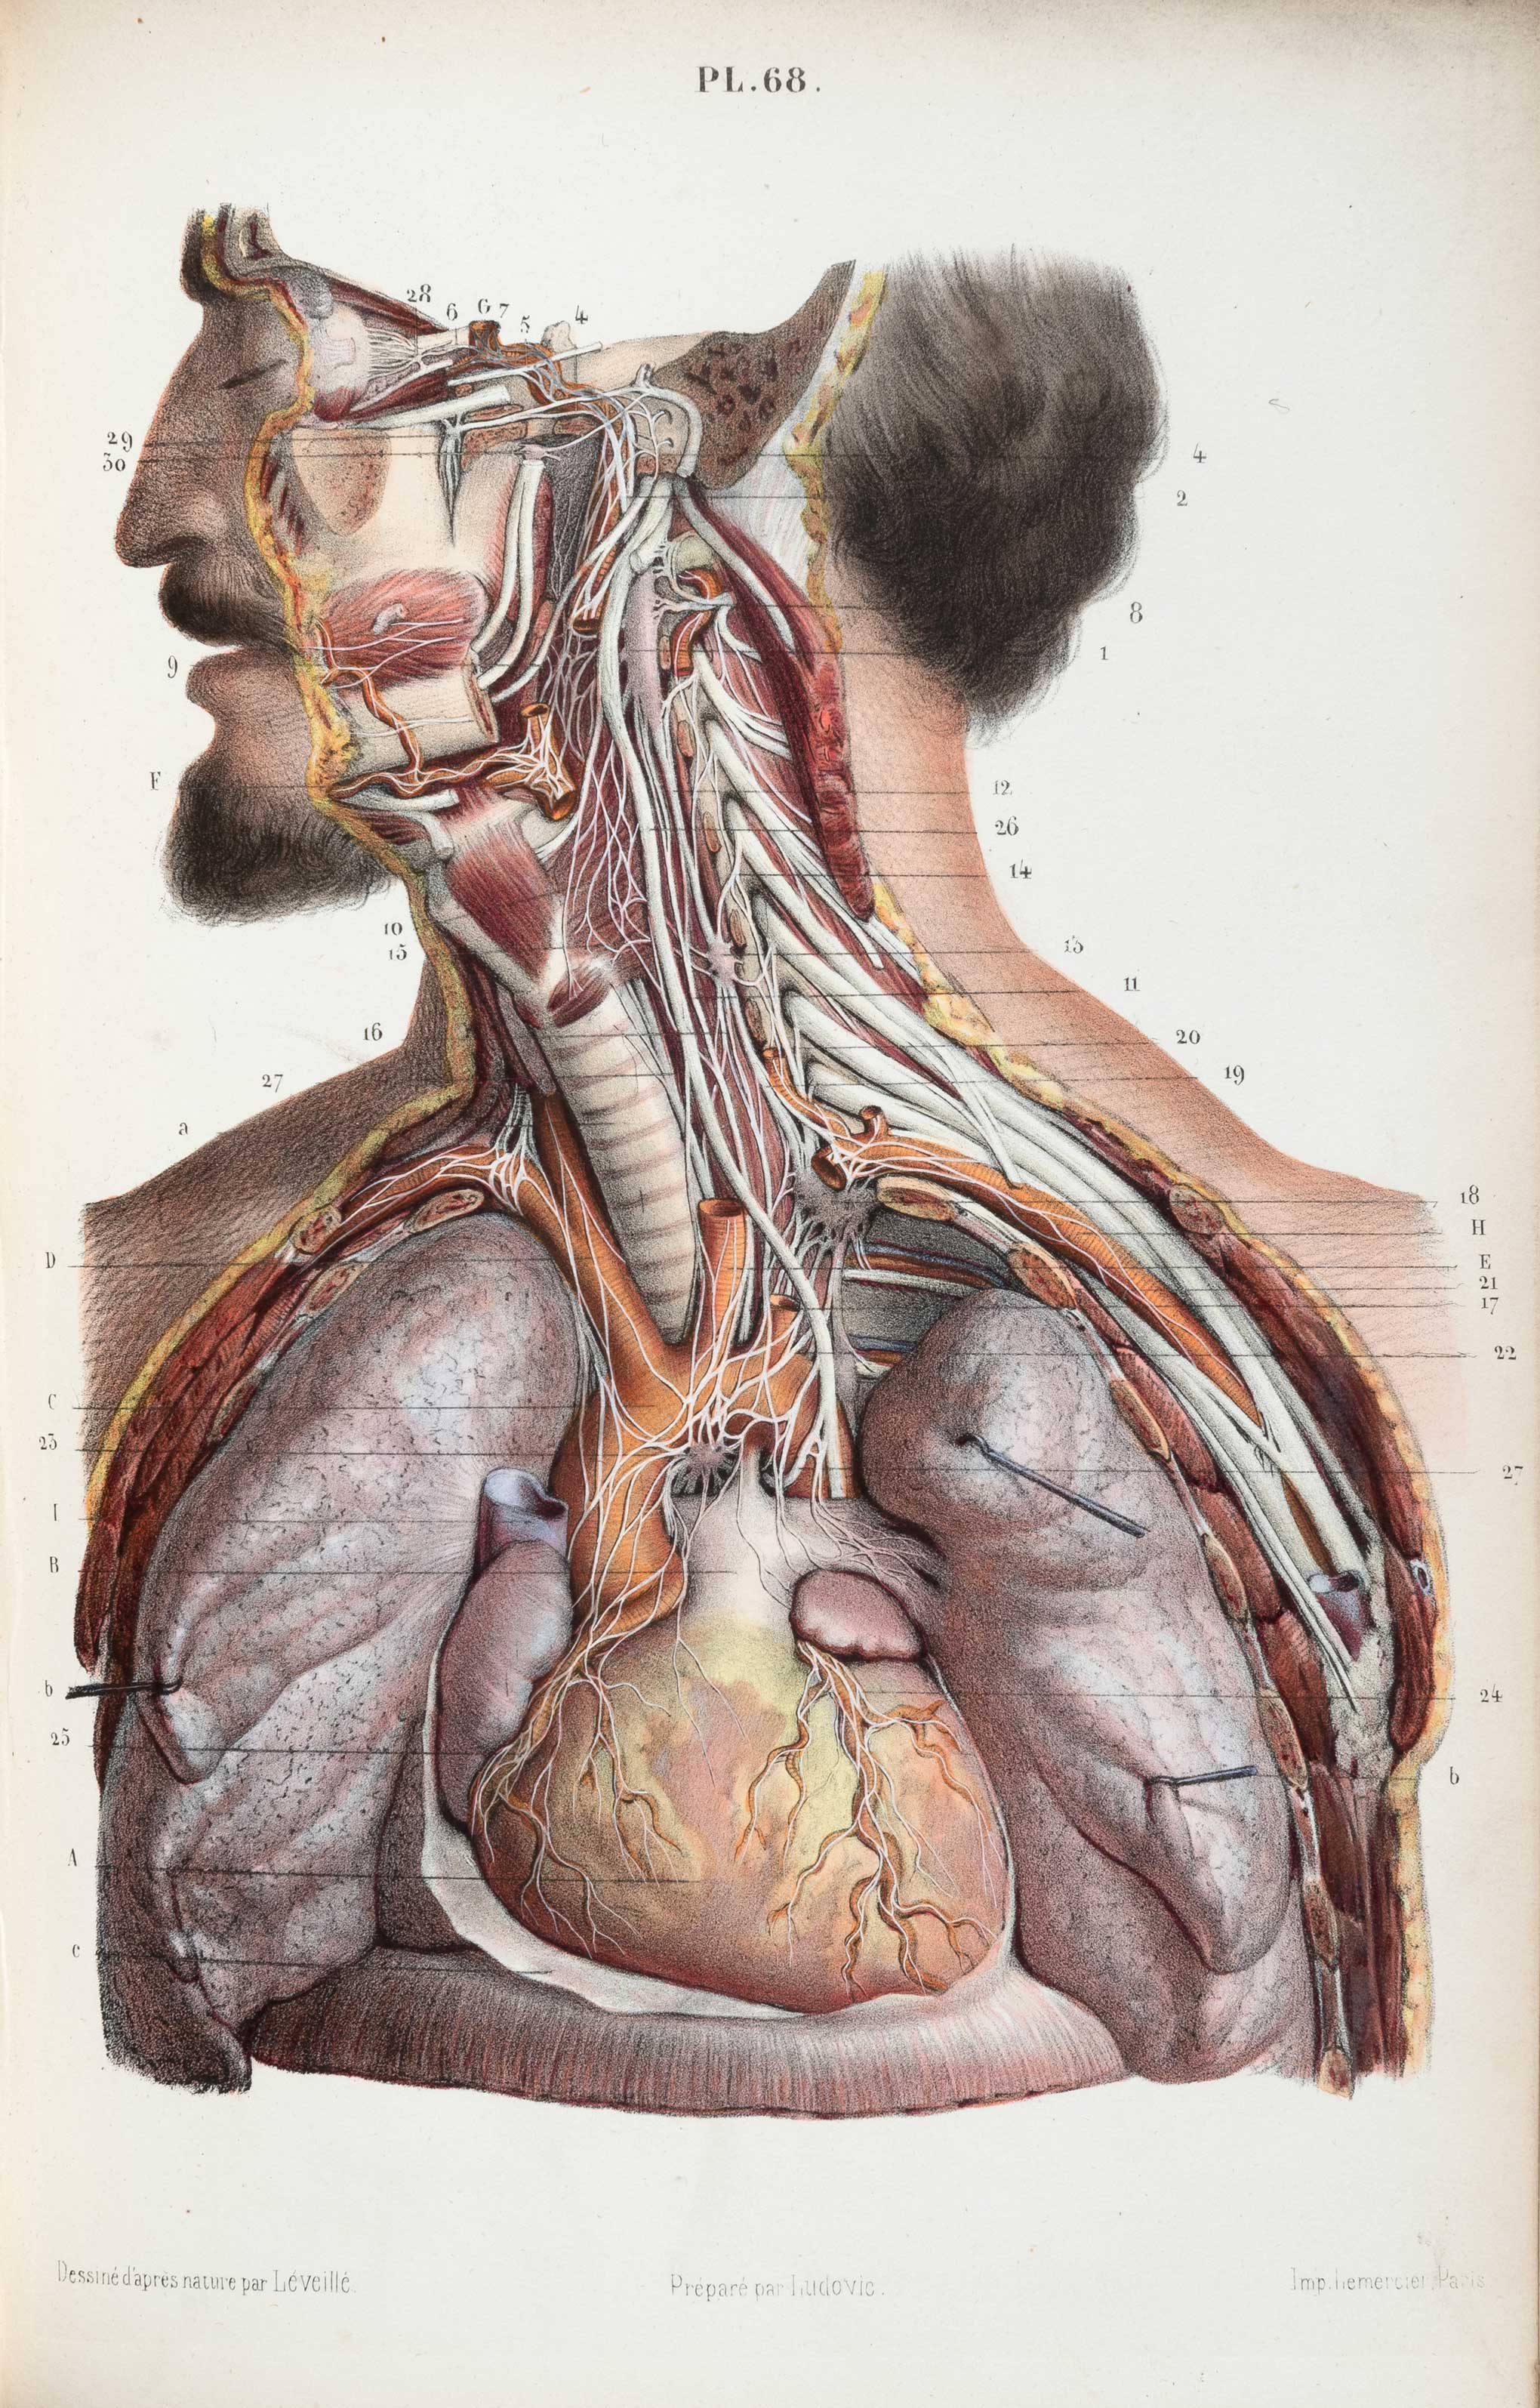 These old, anatomical drawings are worth dissecting | 1843